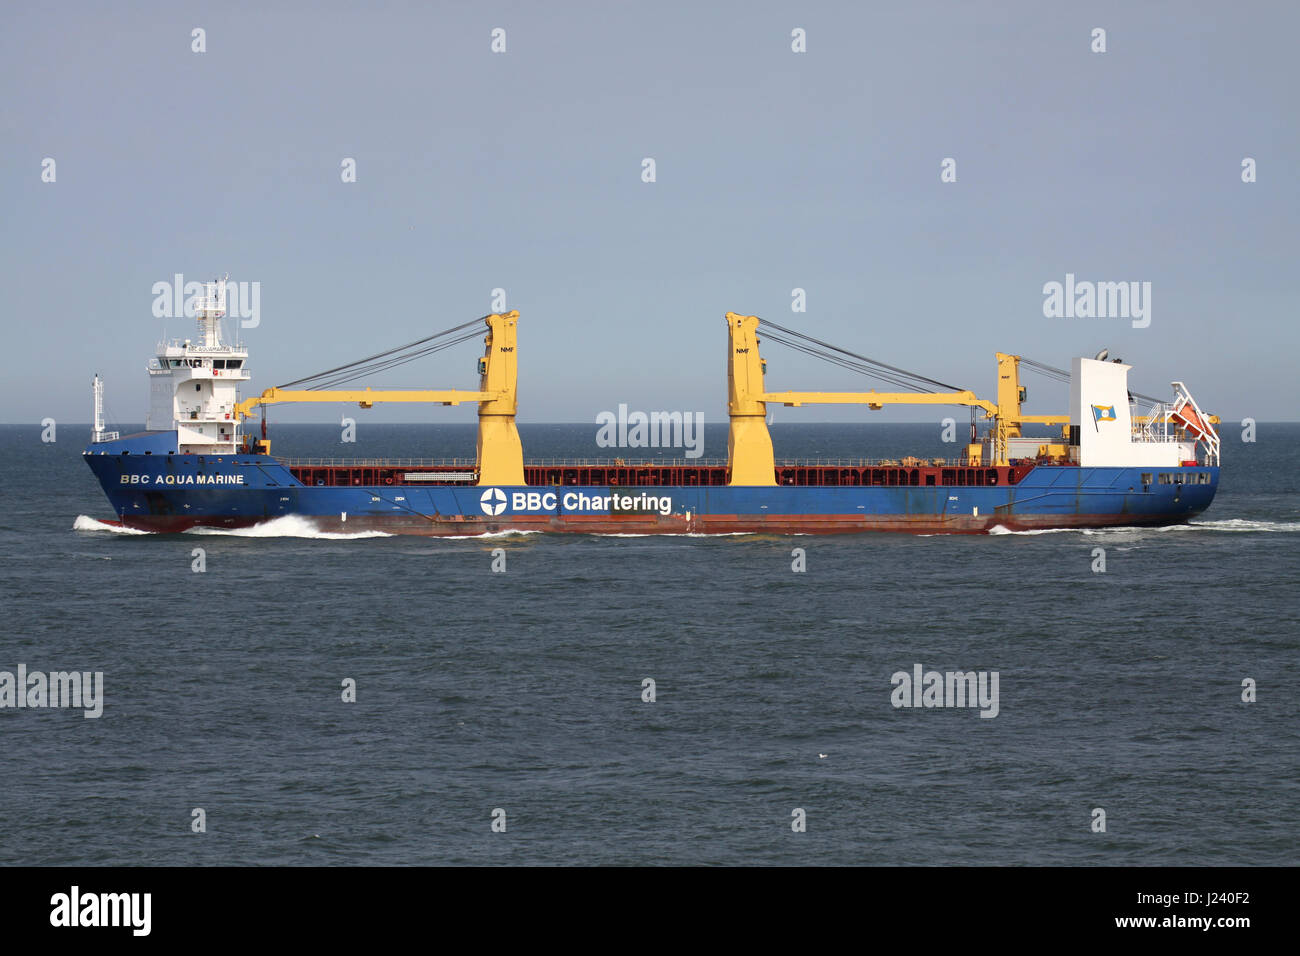 BBC Aquamarine outbound Rotterdam. BBC Chartering is the largest multipurpose, heavy lift and project shipping company - Stock Image